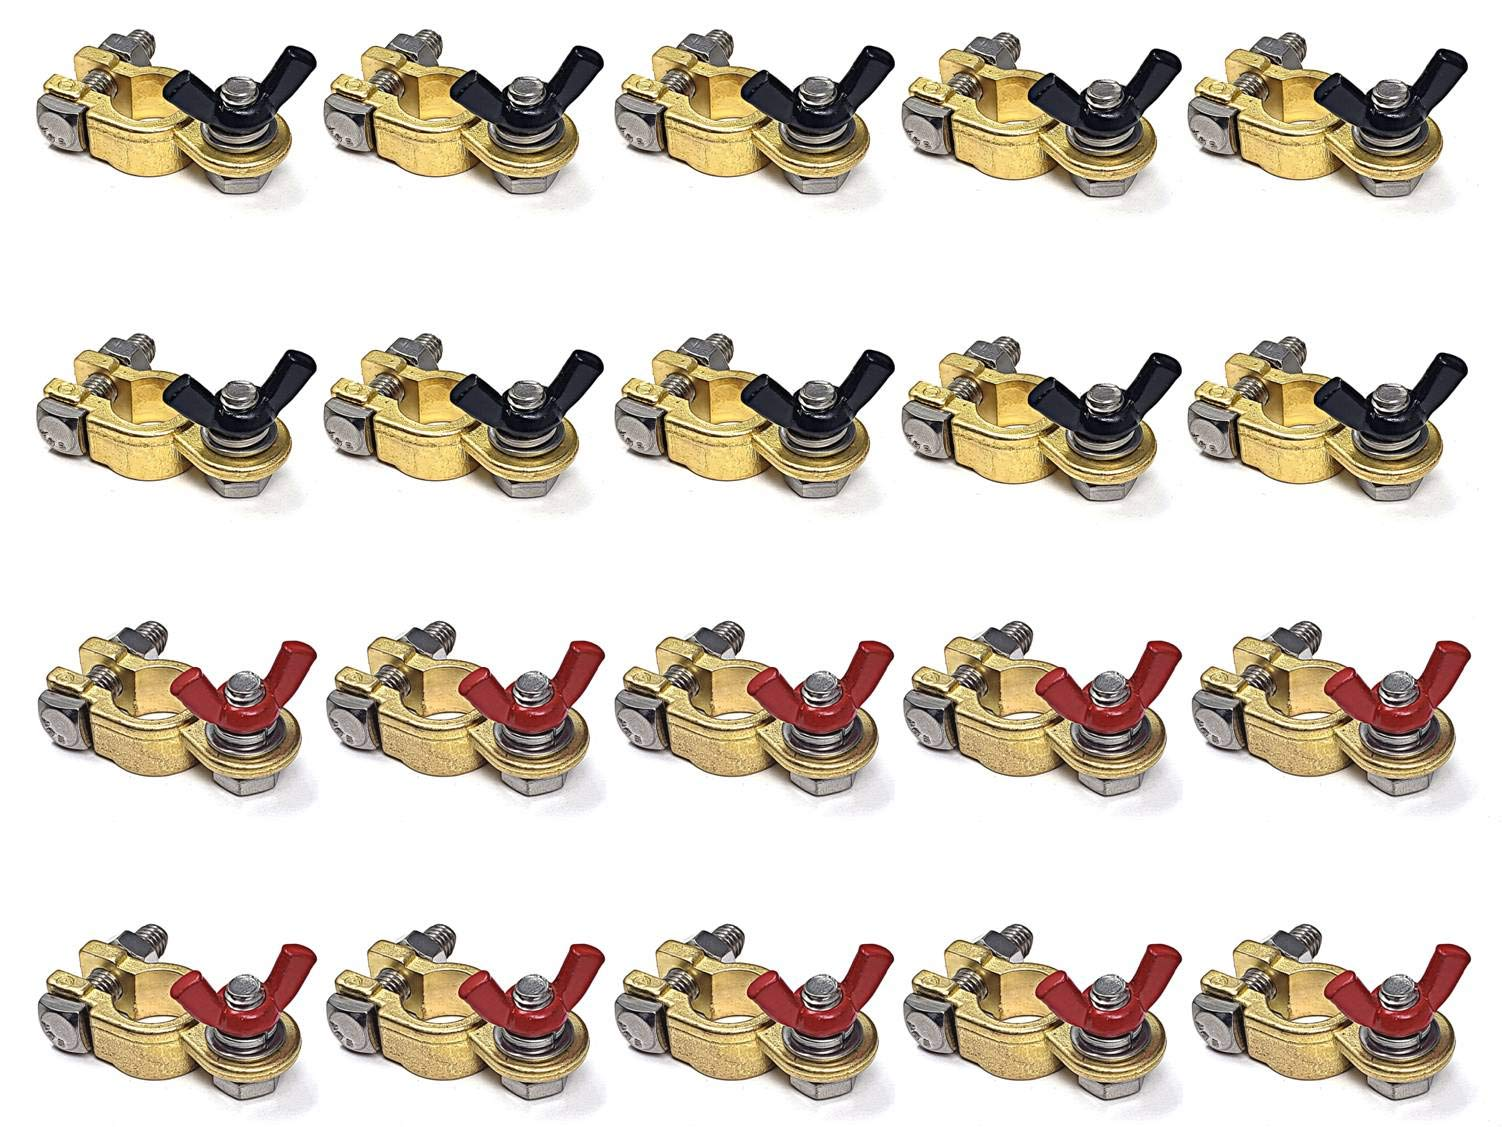 WindyNation 10 Pairs Brass Marine Grade Battery Terminal Top Post for Boat Car RV (Military Spec. B-12128C) by WindyNation